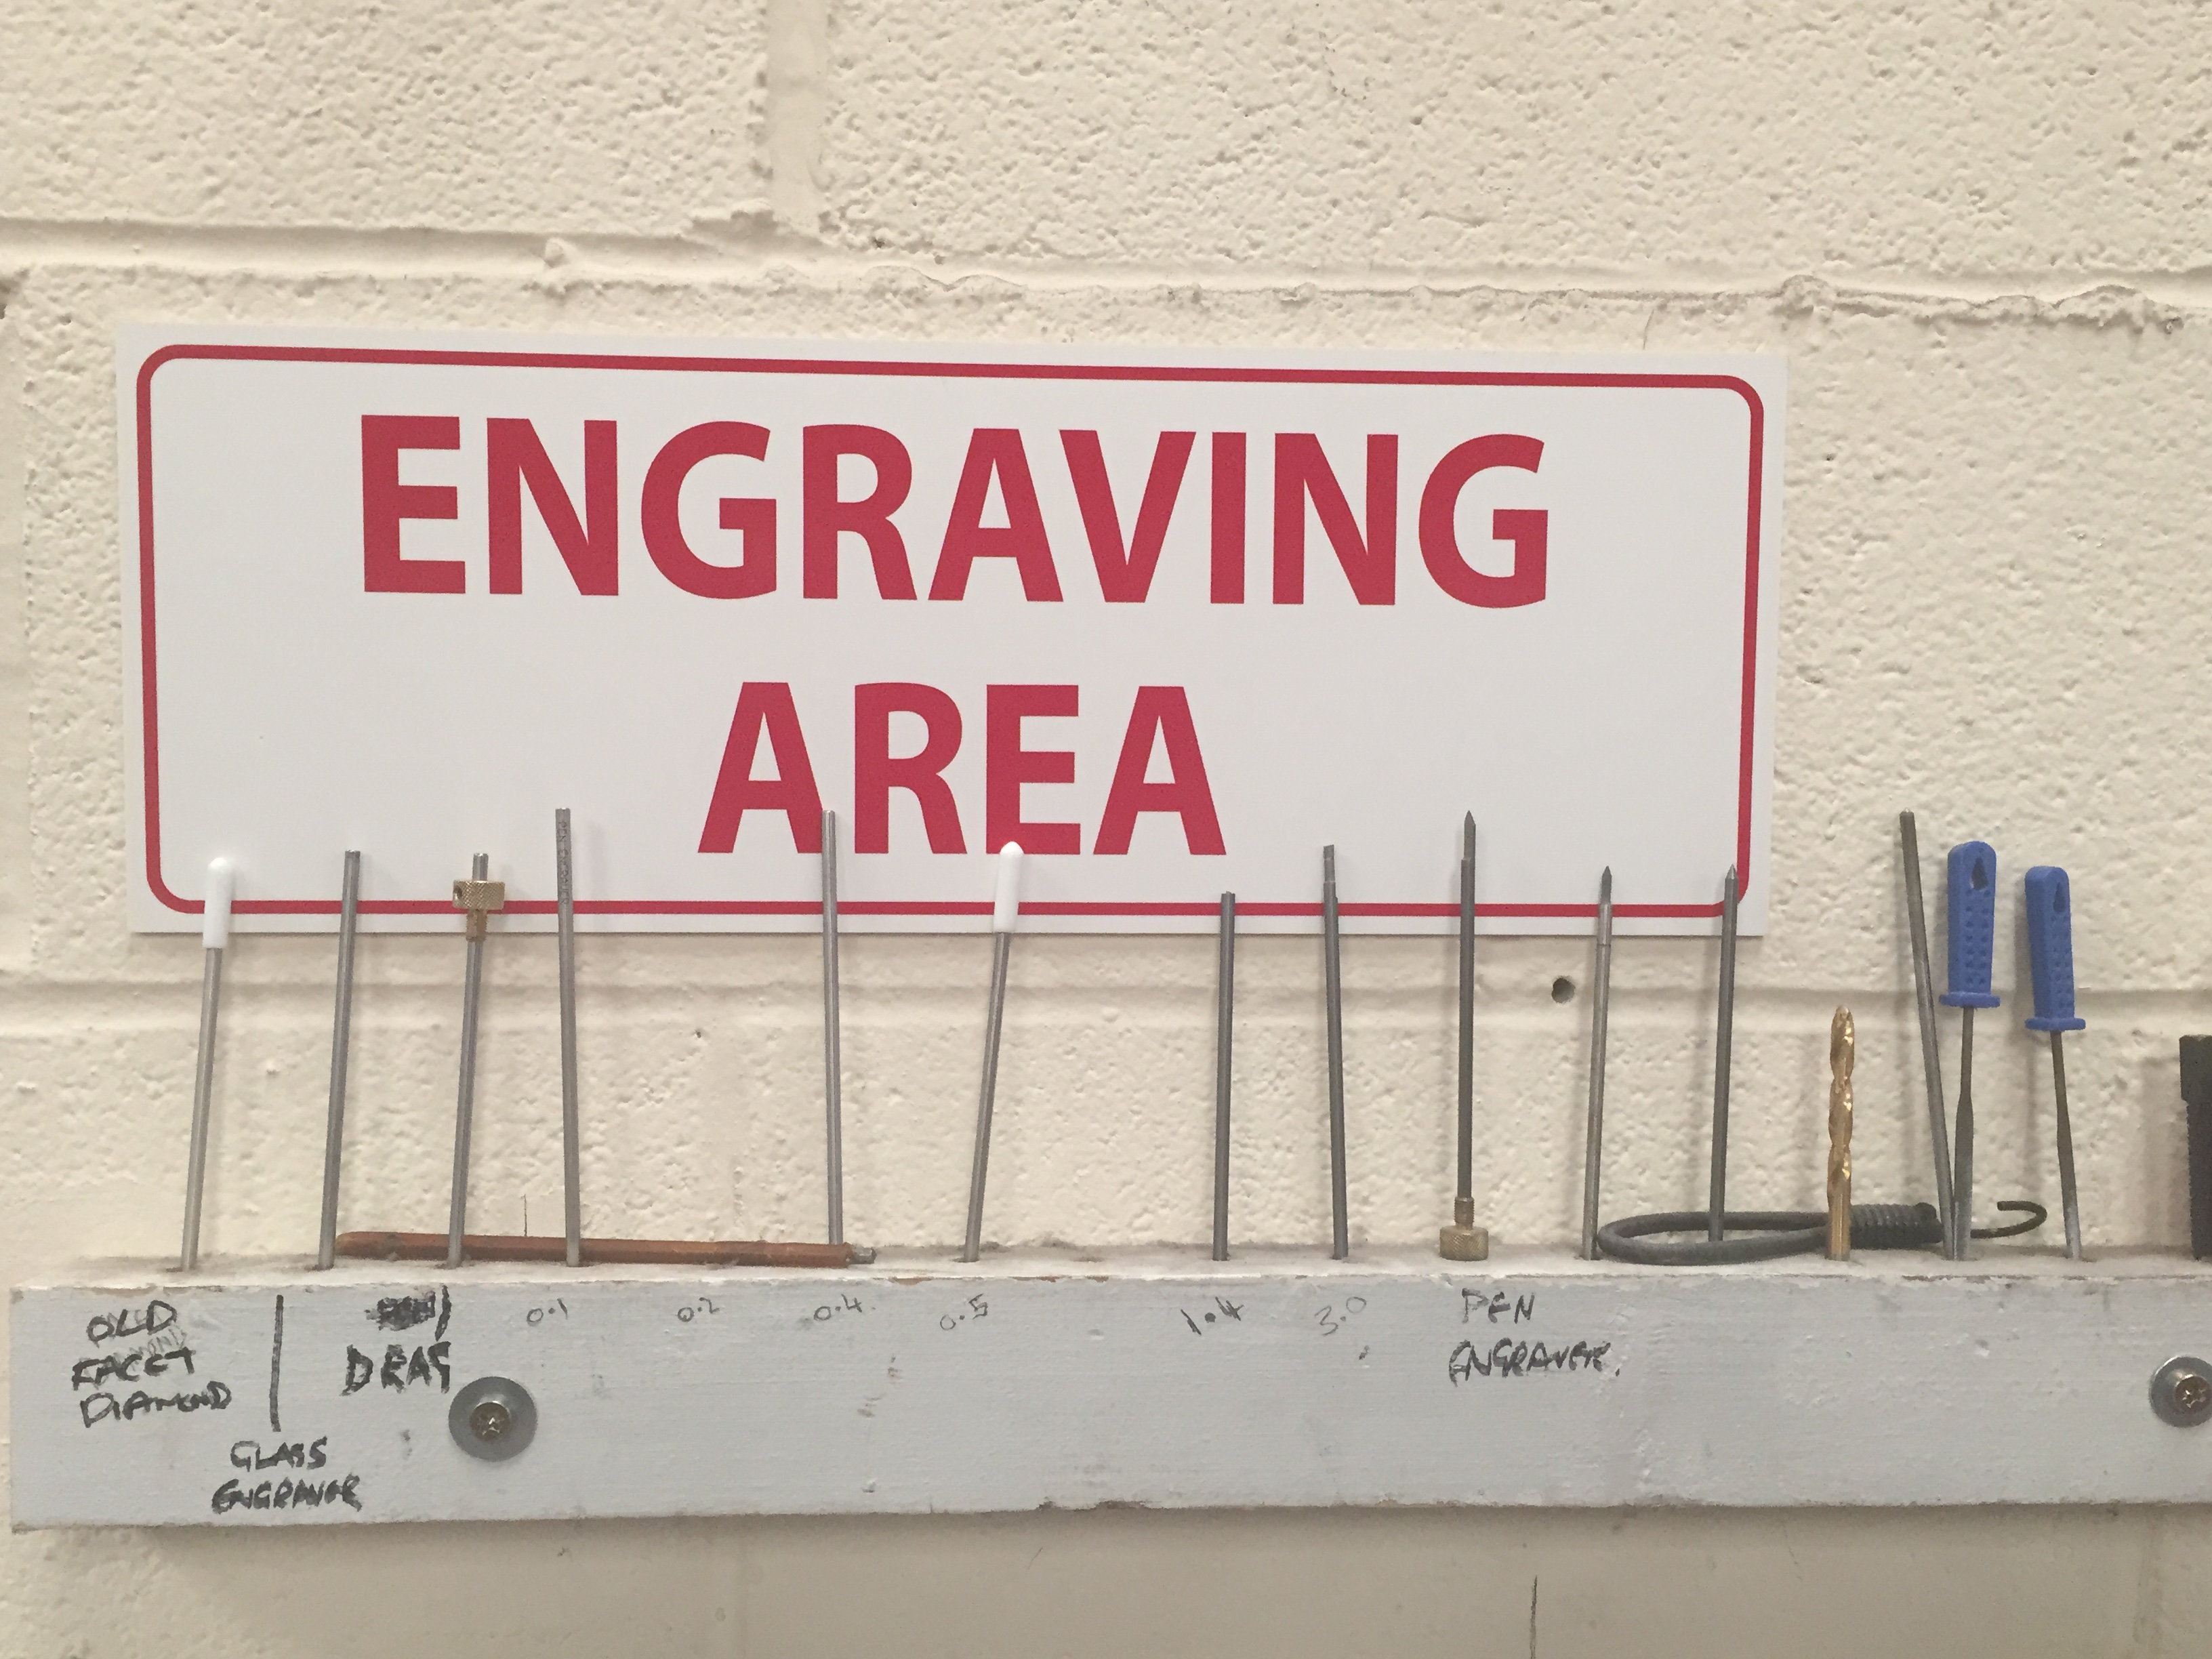 Engraving Area - Image